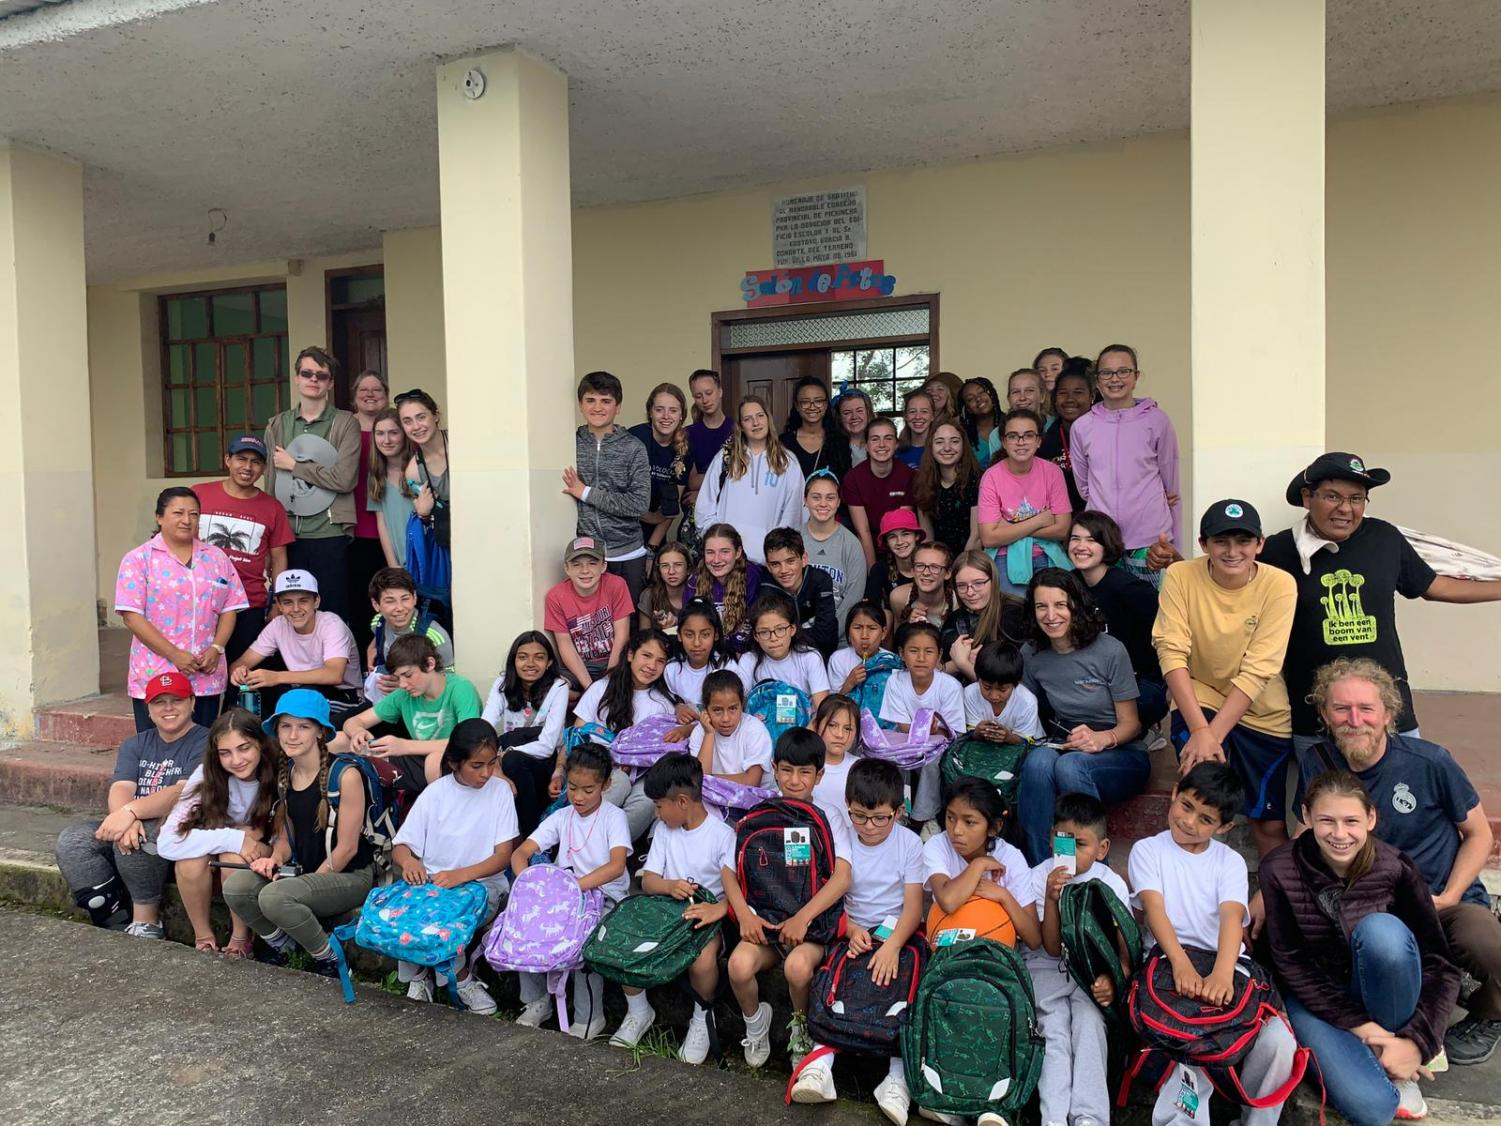 Clayton students completed a service trip this summer, interacting with kids and families in the village of Yunguilla in Ecuador.